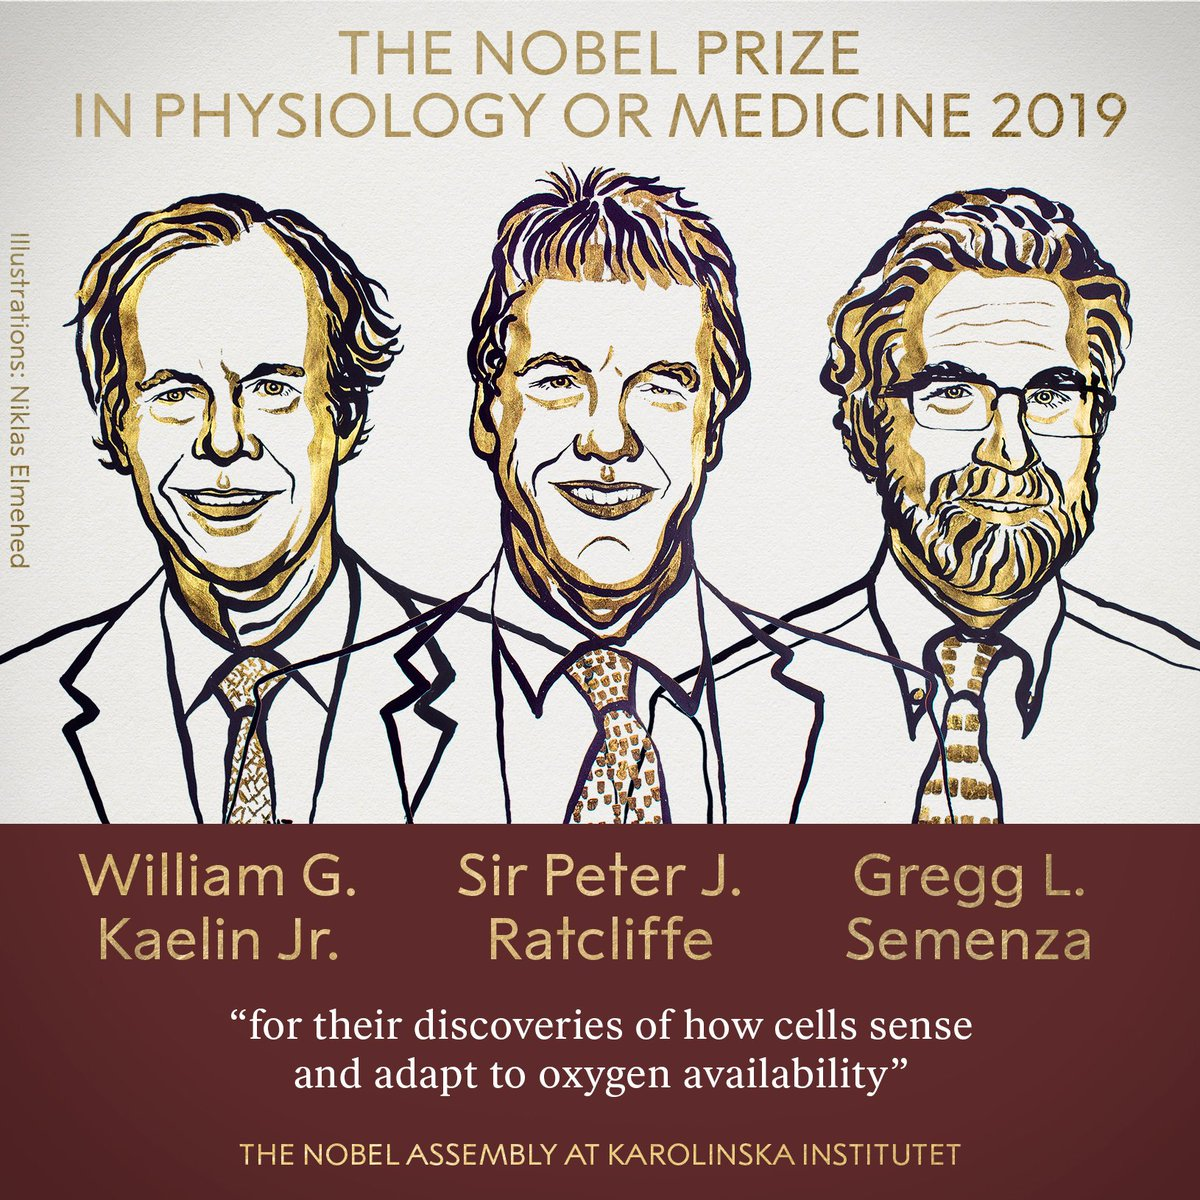 """Congratulations 💐💐❤️ The 2019 #NobelPrize in Physiology or Medicine has been awarded jointly to @DanaFarber William G. Kaelin Jr, Sir Peter J. Ratcliffe and @JohnsHopkins Gregg L. Semenza """"for their discoveries of how cells sense and adapt to oxygen availability."""""""